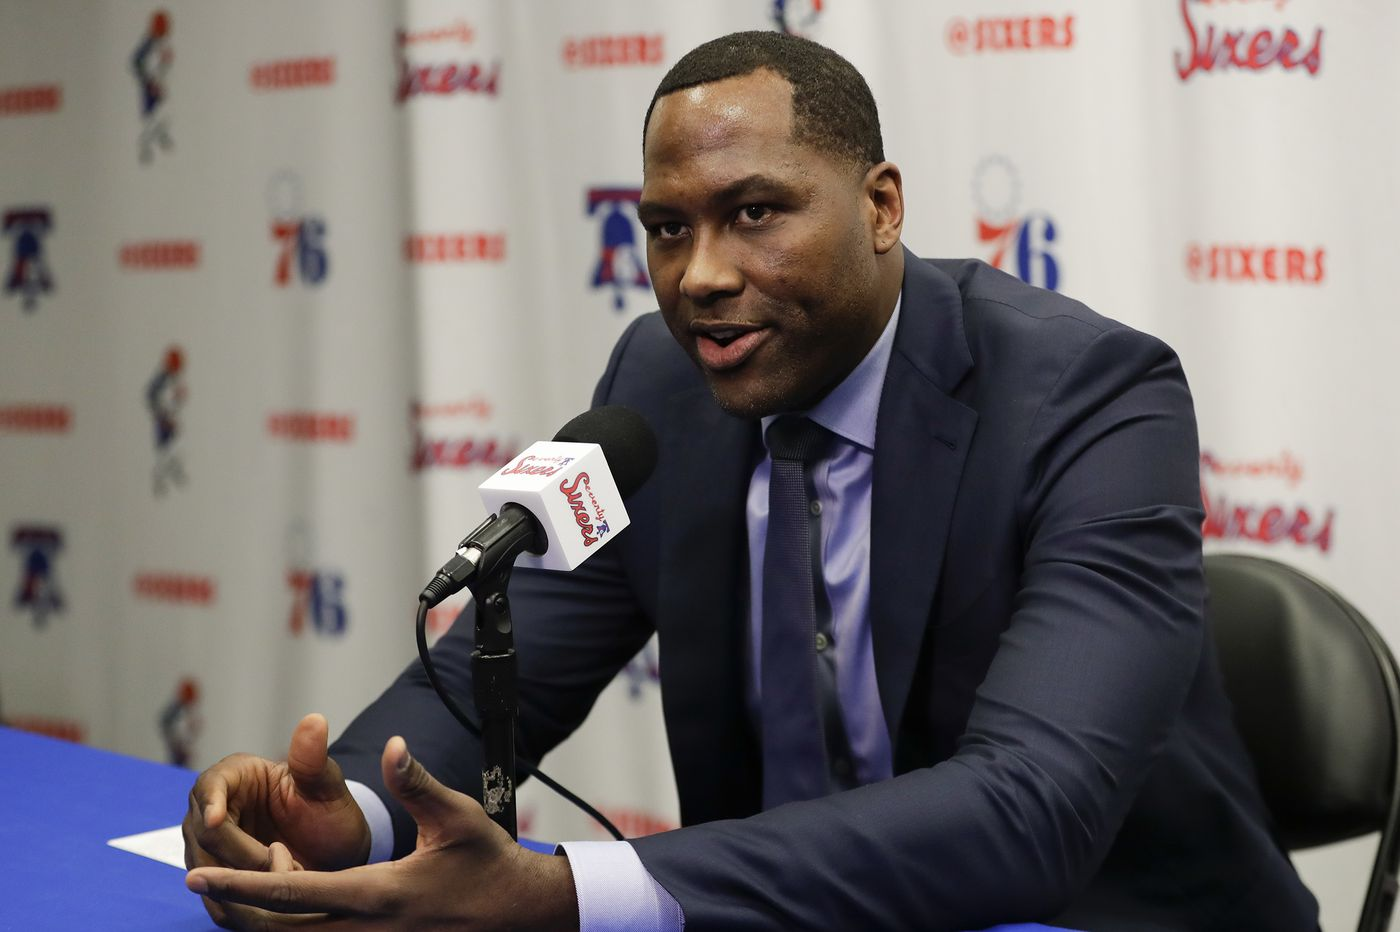 Sixers' Elton Brand: 'I owe it to this city to deliver on our goals' | Off the Dribble